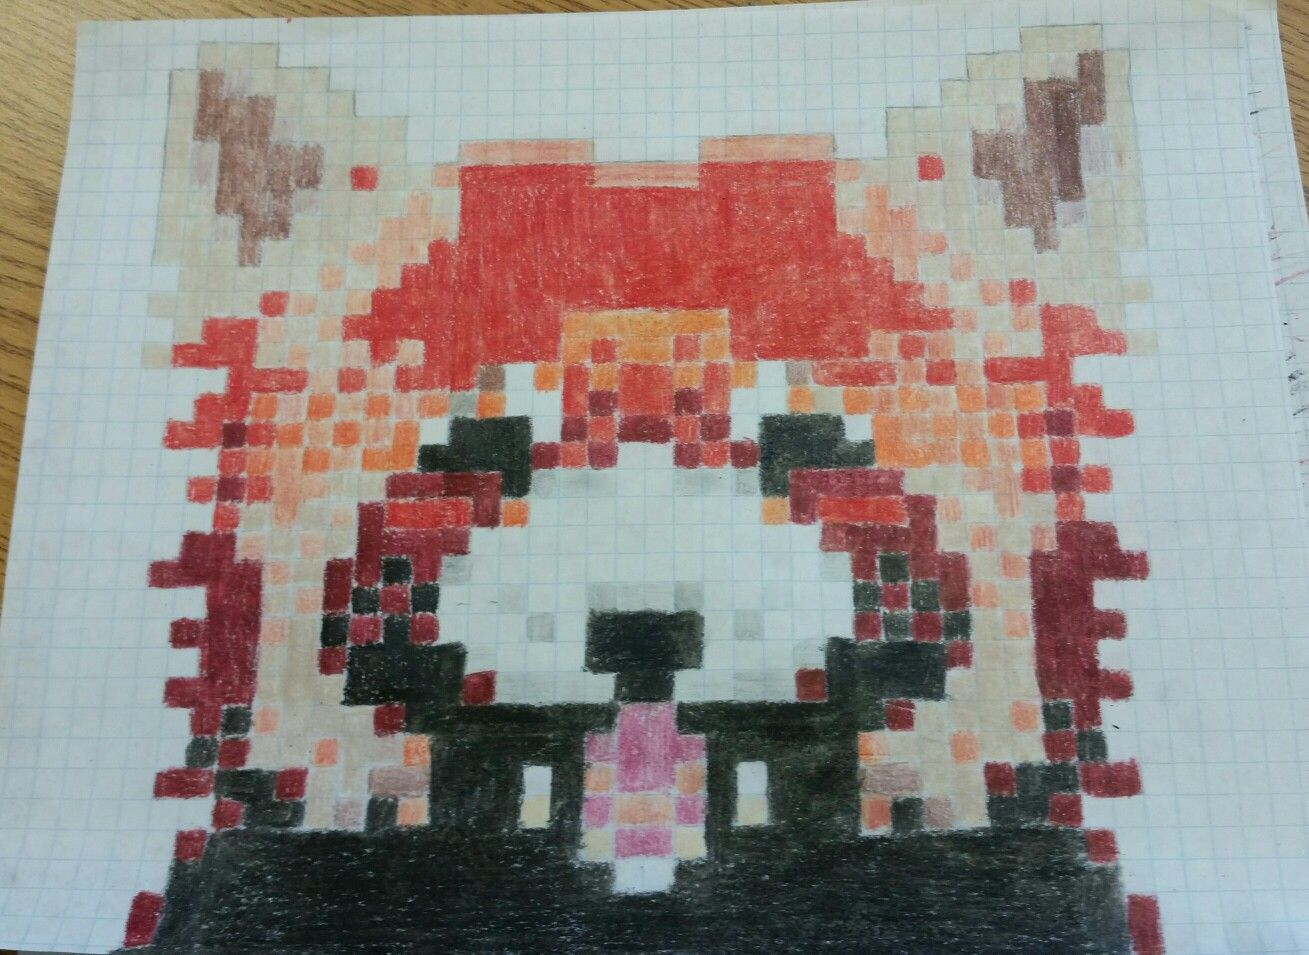 Red Panda Pixel Art Pixel Art Art Red Panda